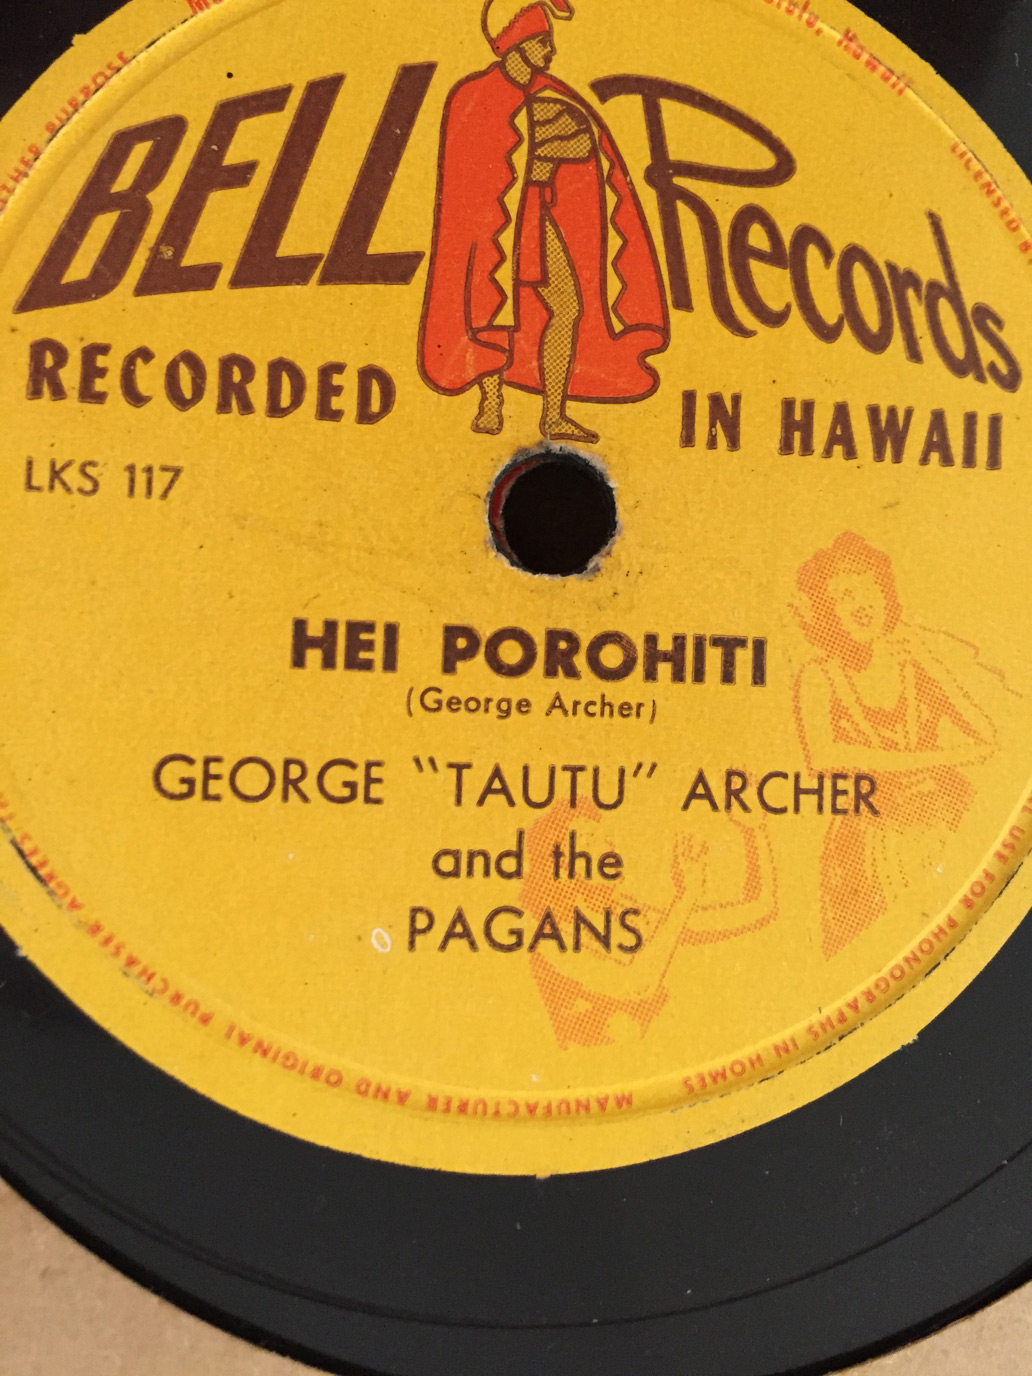 Vintage Hawaiian records